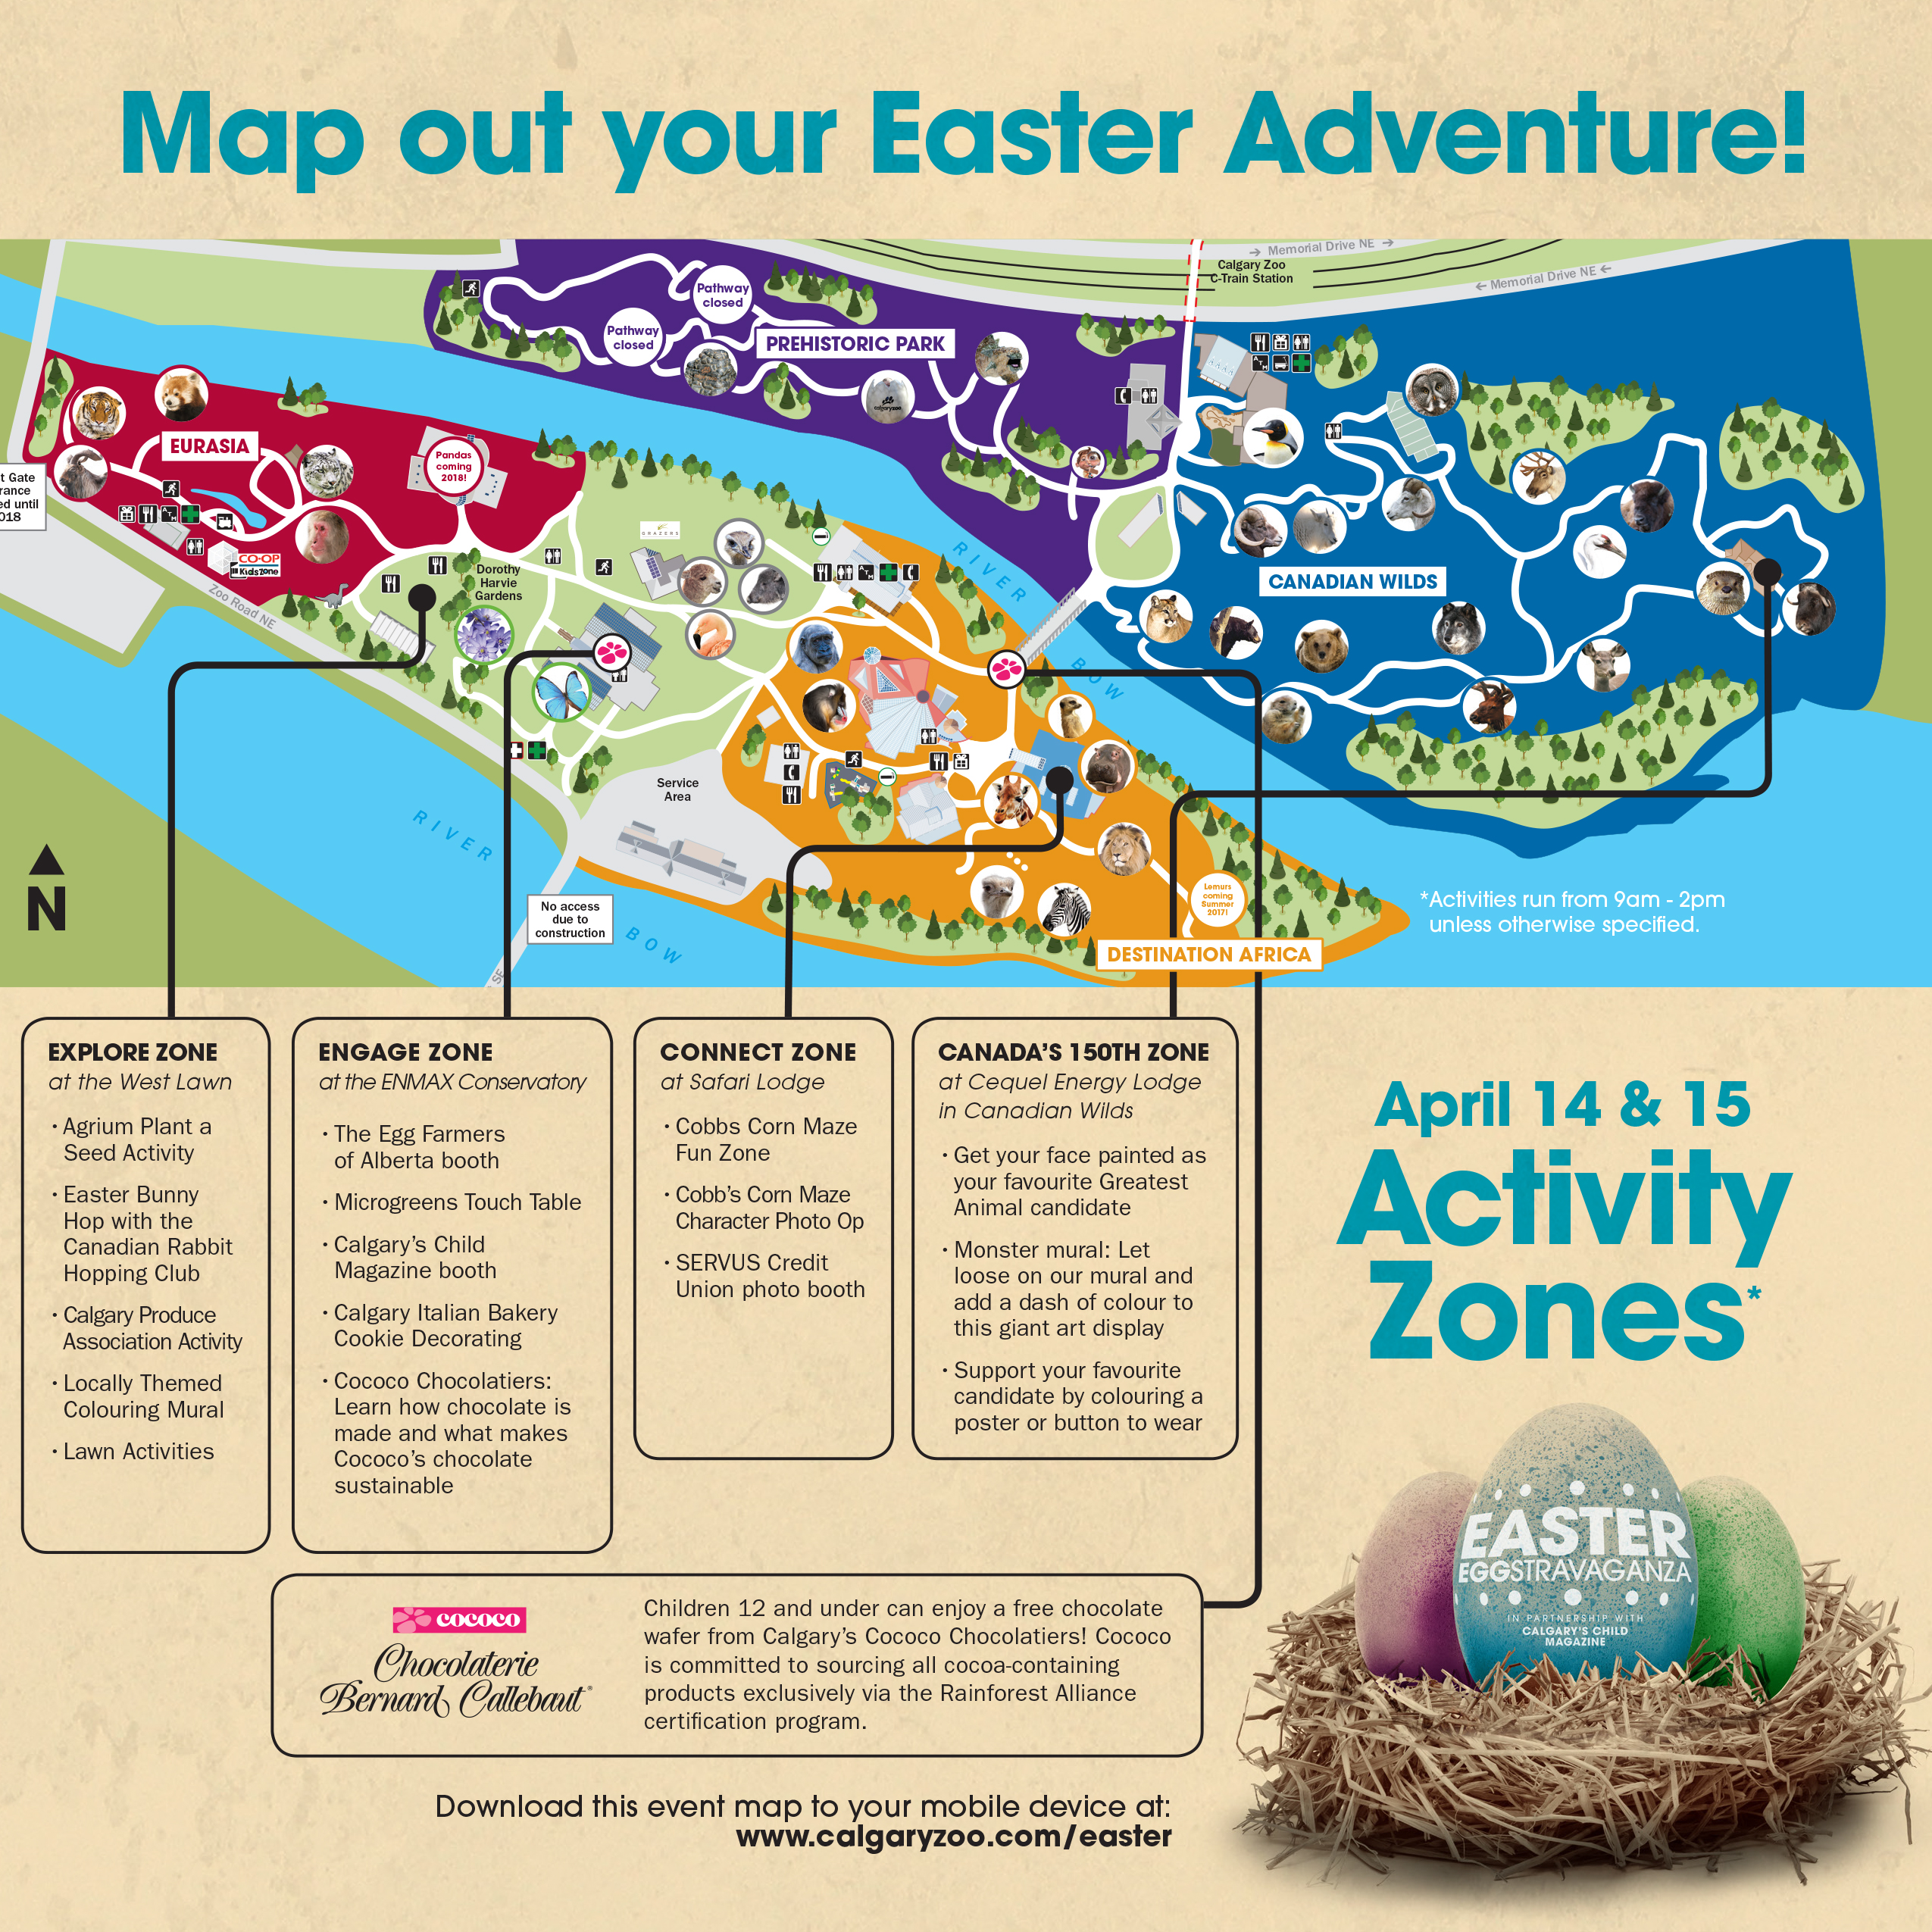 Calgary Zoo Map Easter 2017_Digital Map Image   Calgary Zoo   Blog